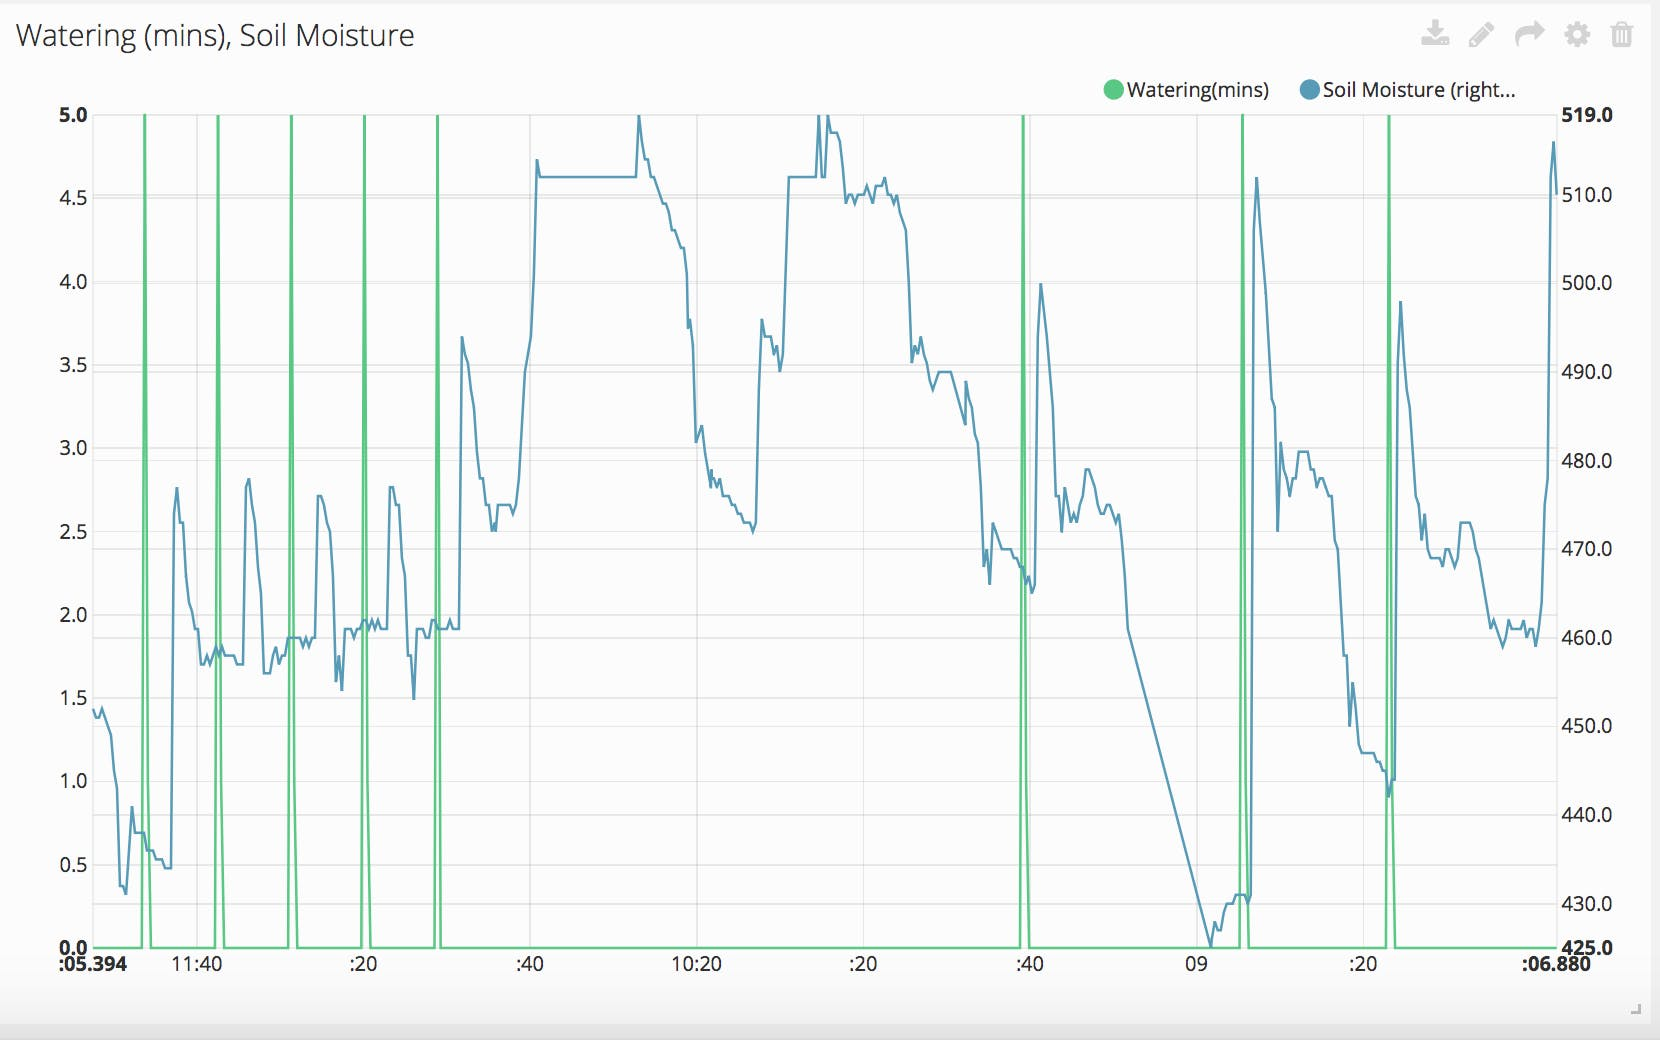 Watering Events (green spikes) and Soil Moisture (Blue Lines)